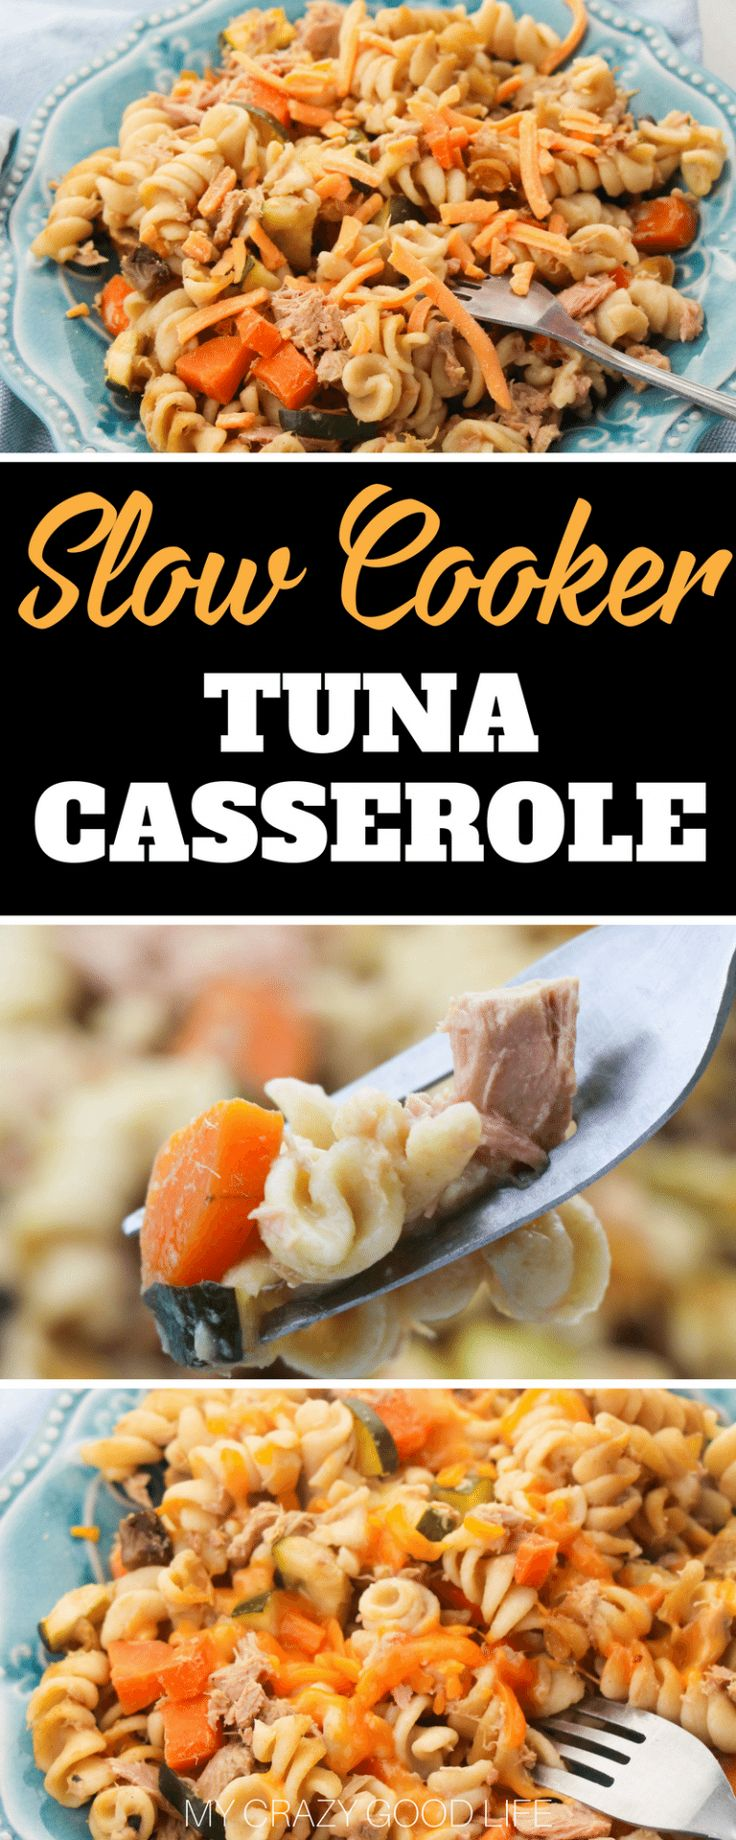 This slow cooker tuna casserole could not be easier! You'll love making this recipe for those quick weeknight dinners. You can customize this healthy tuna casserole by including your favorite veggies!#21dayfix #recipes #slowcooker